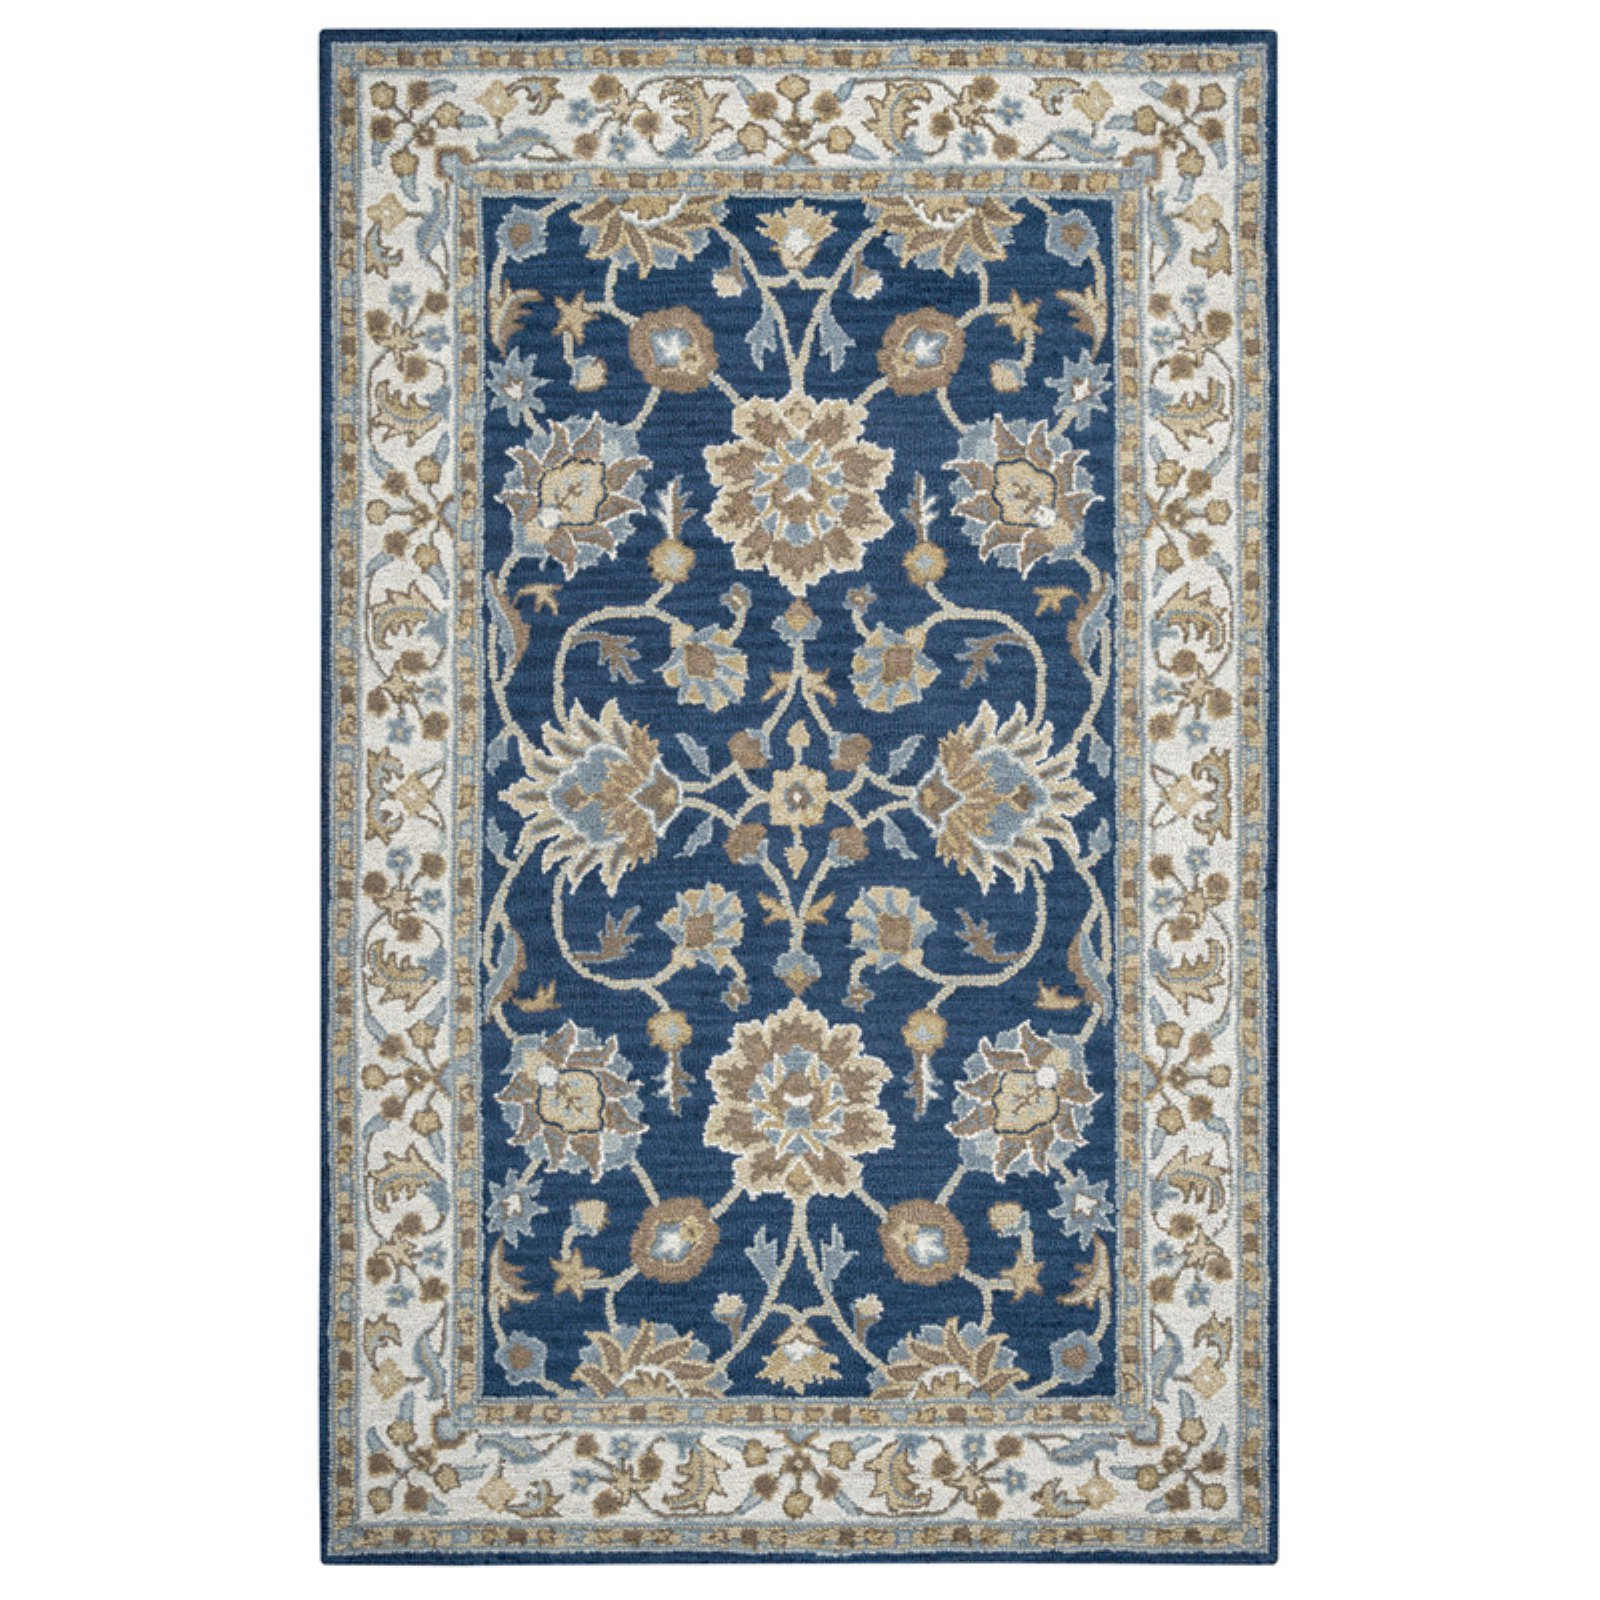 Rizzy Rugs Ashlyn Navy/Ivory Floral Area Rug